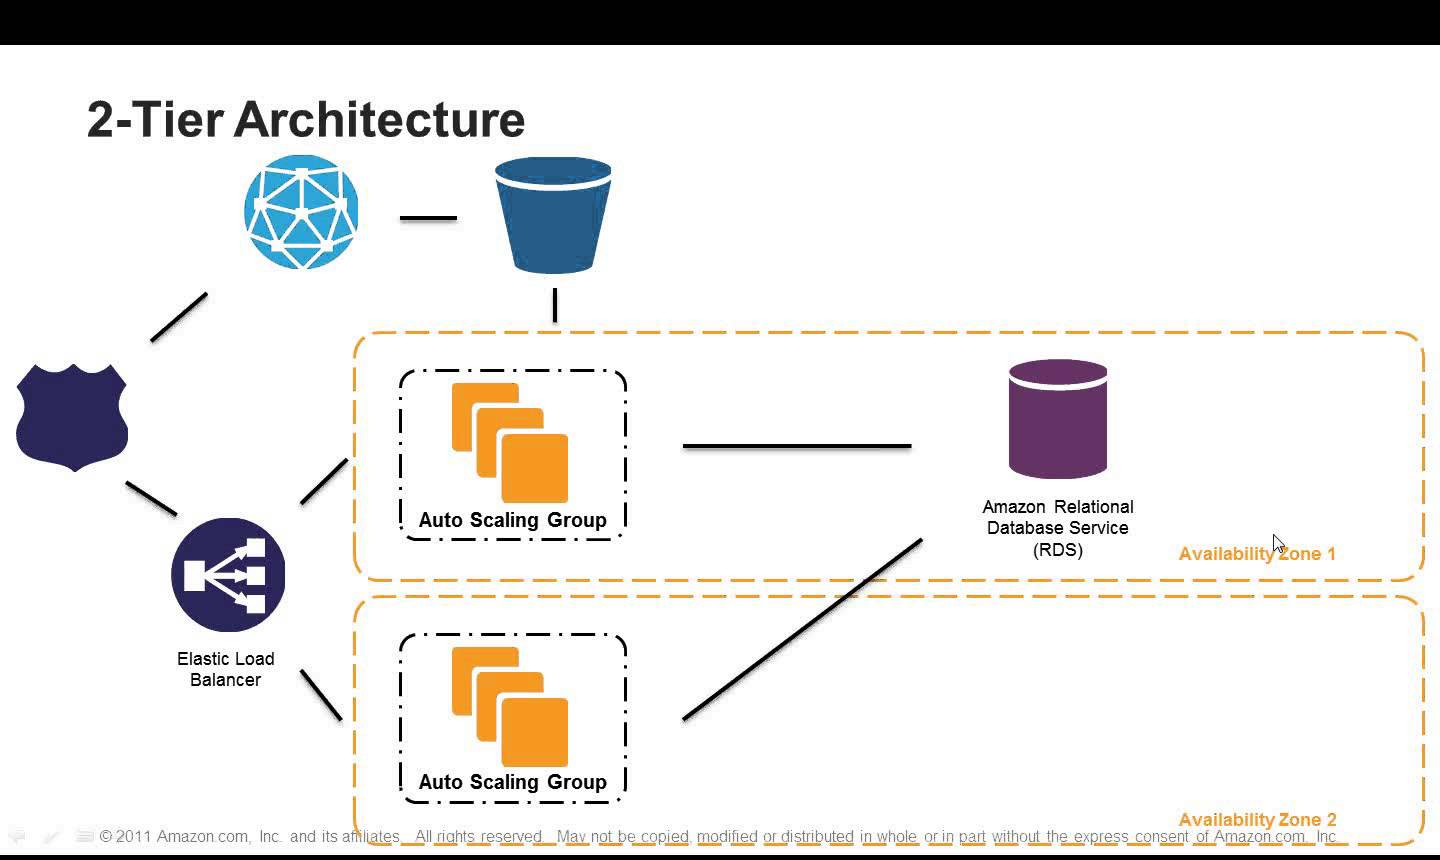 7 Steps to Select the Right AWS Cloud Architecture